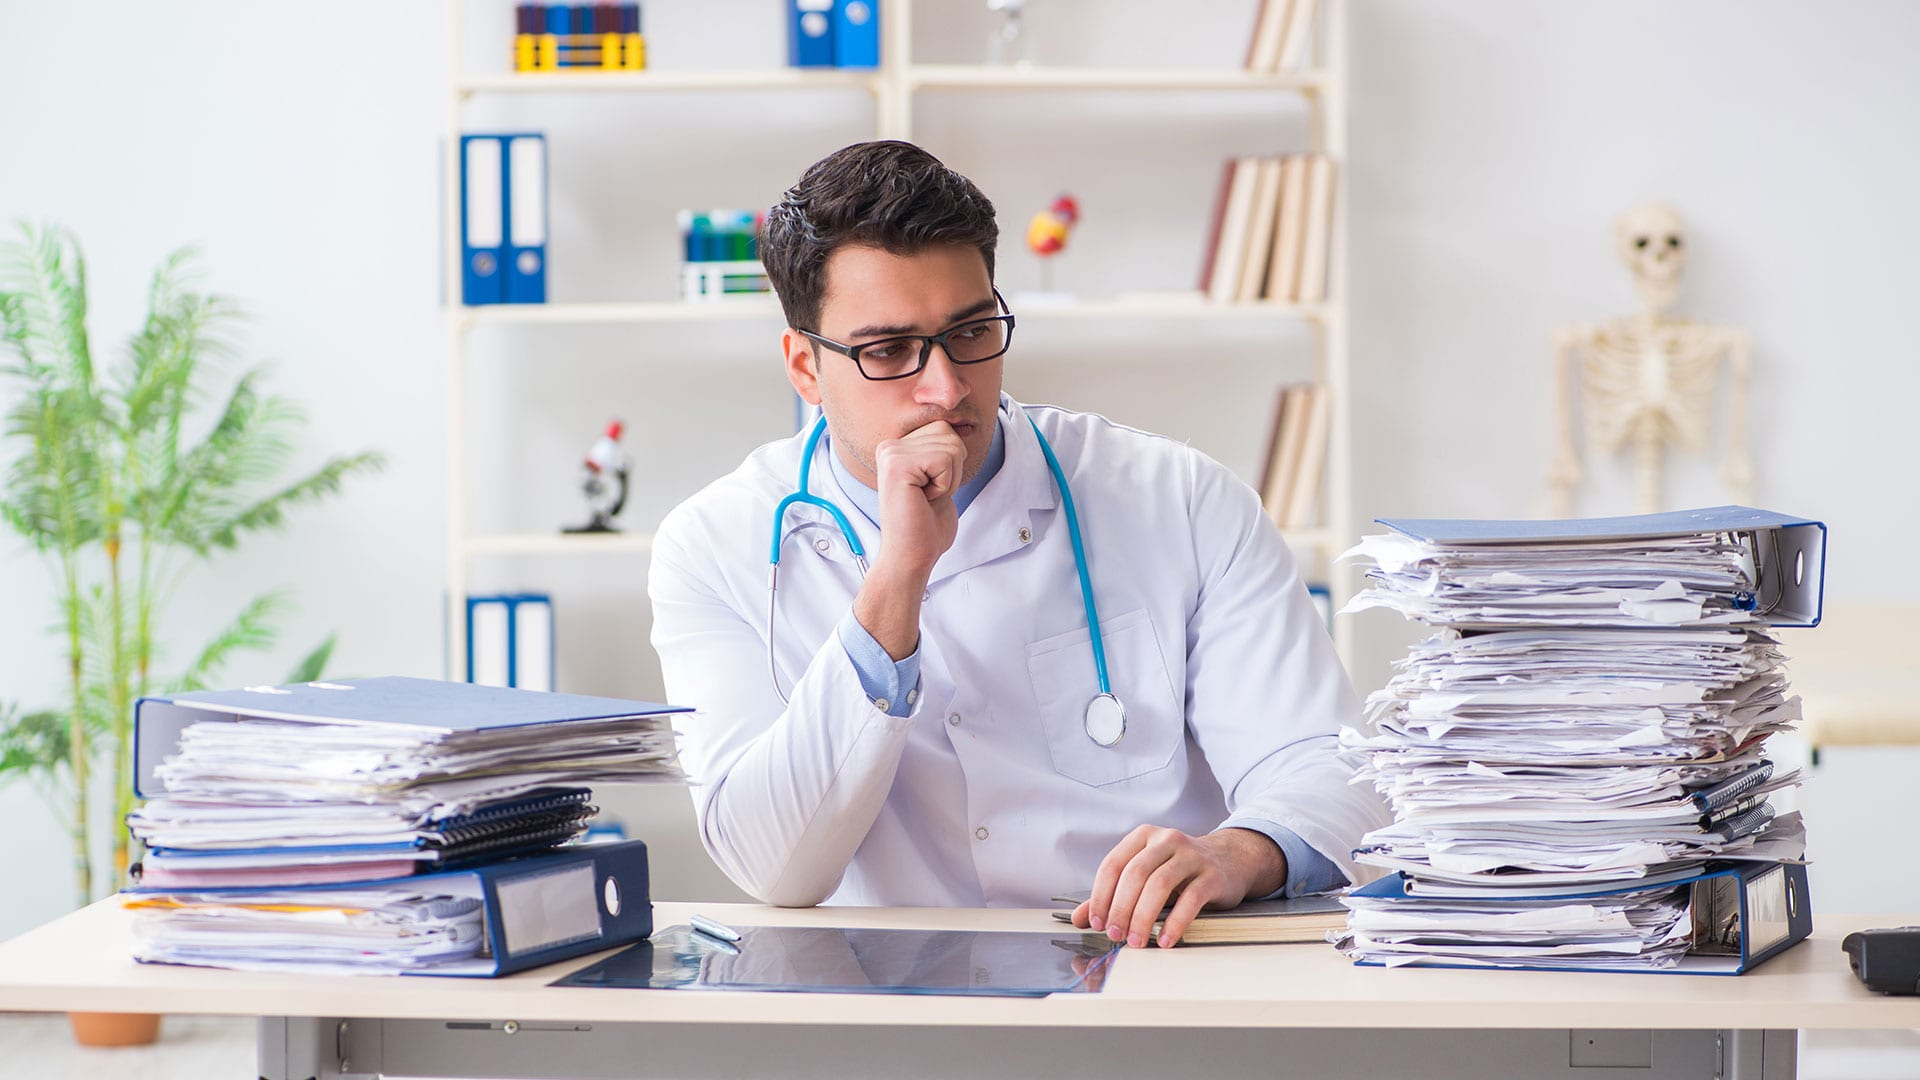 medical doctor with a pile of charts on his desk